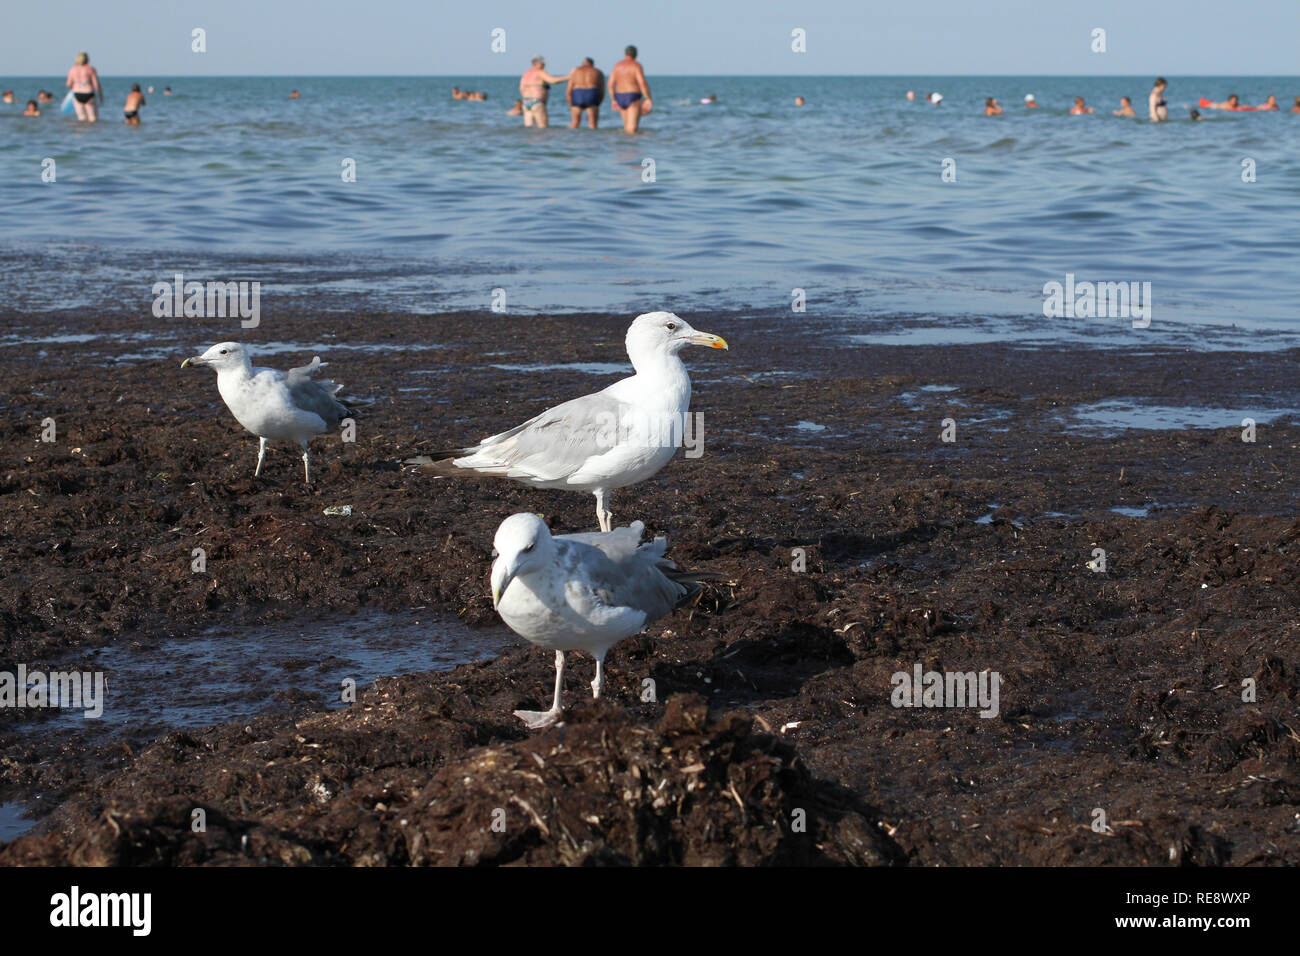 Seagulls walk on dirty from algae shore after storm. Arabat Spit in the Azov Sea. August 2018 - Stock Image